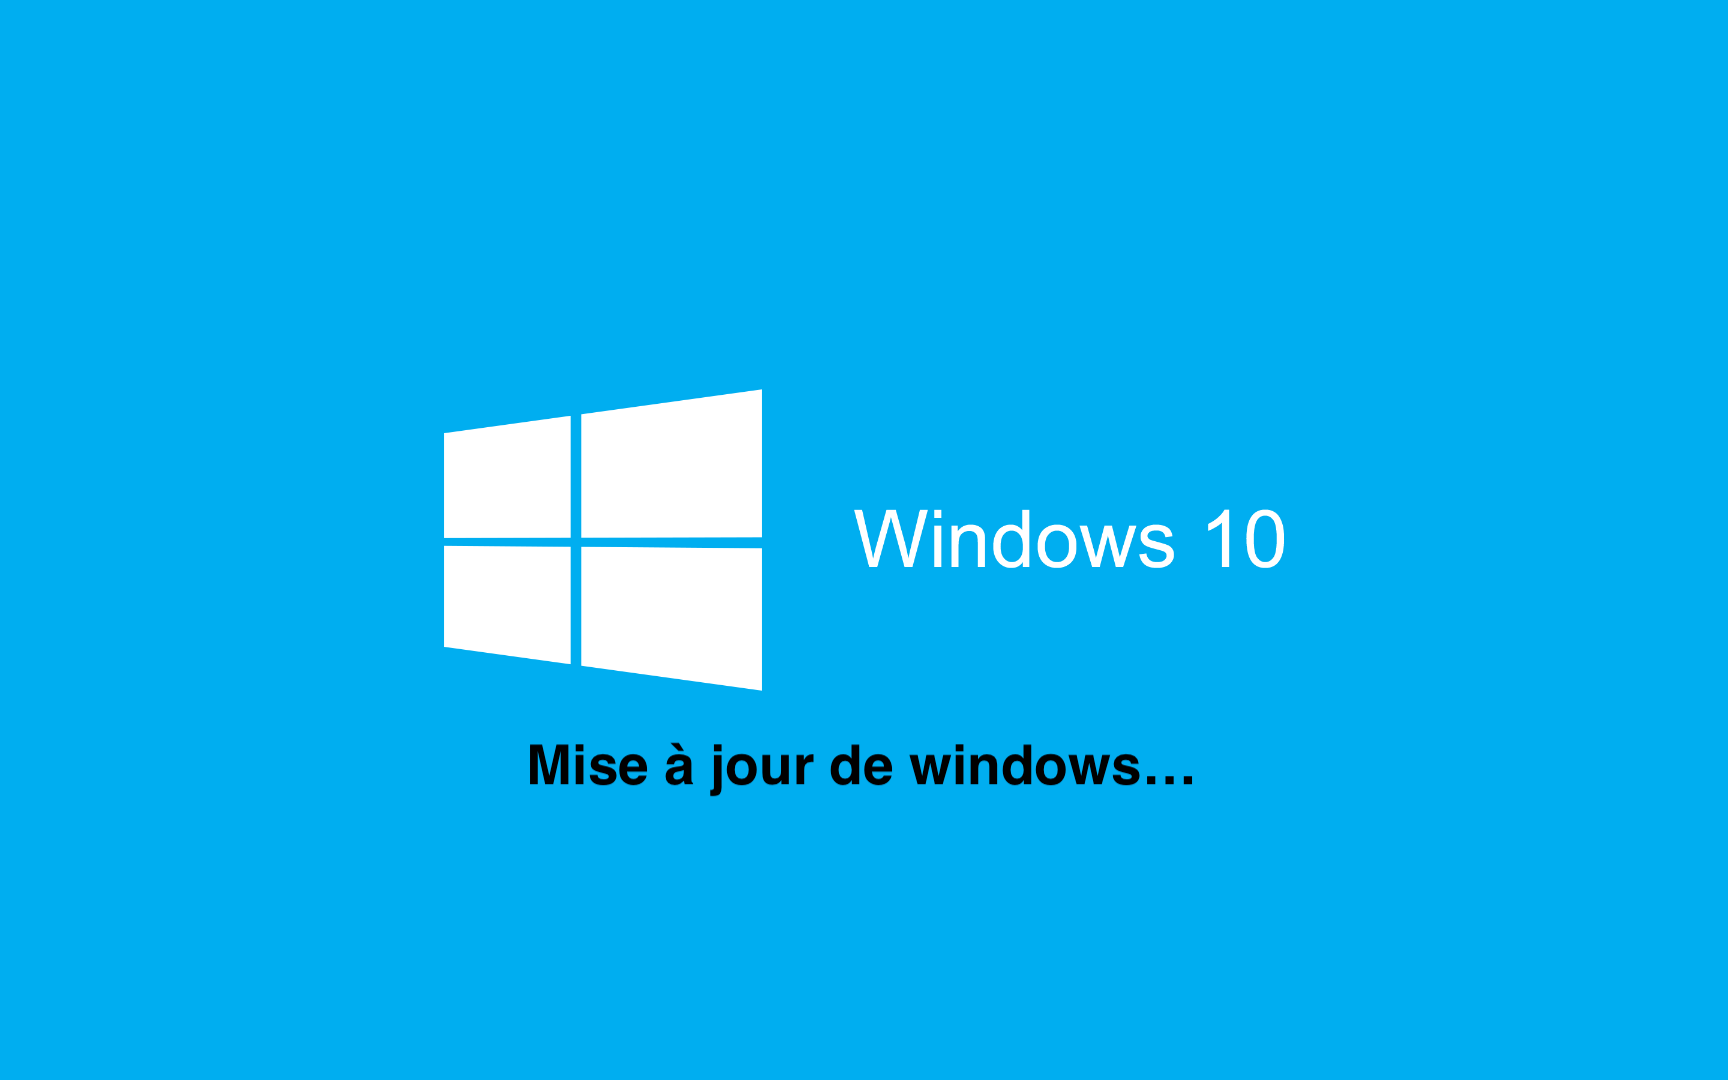 Windows 7 mise à jours en core possible…